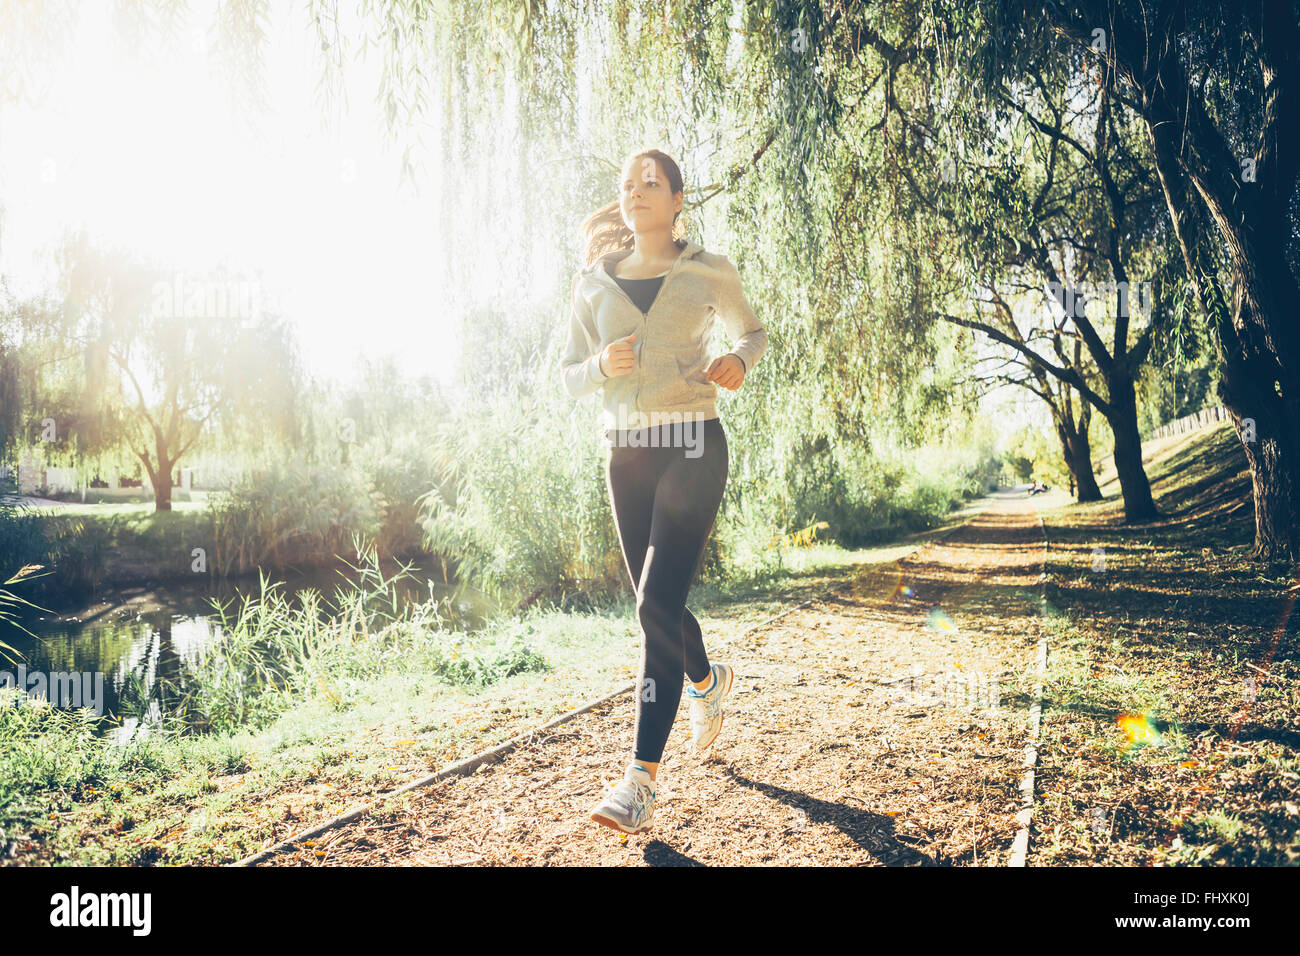 Fit woman jogging in park surrounded by trees - Stock Image